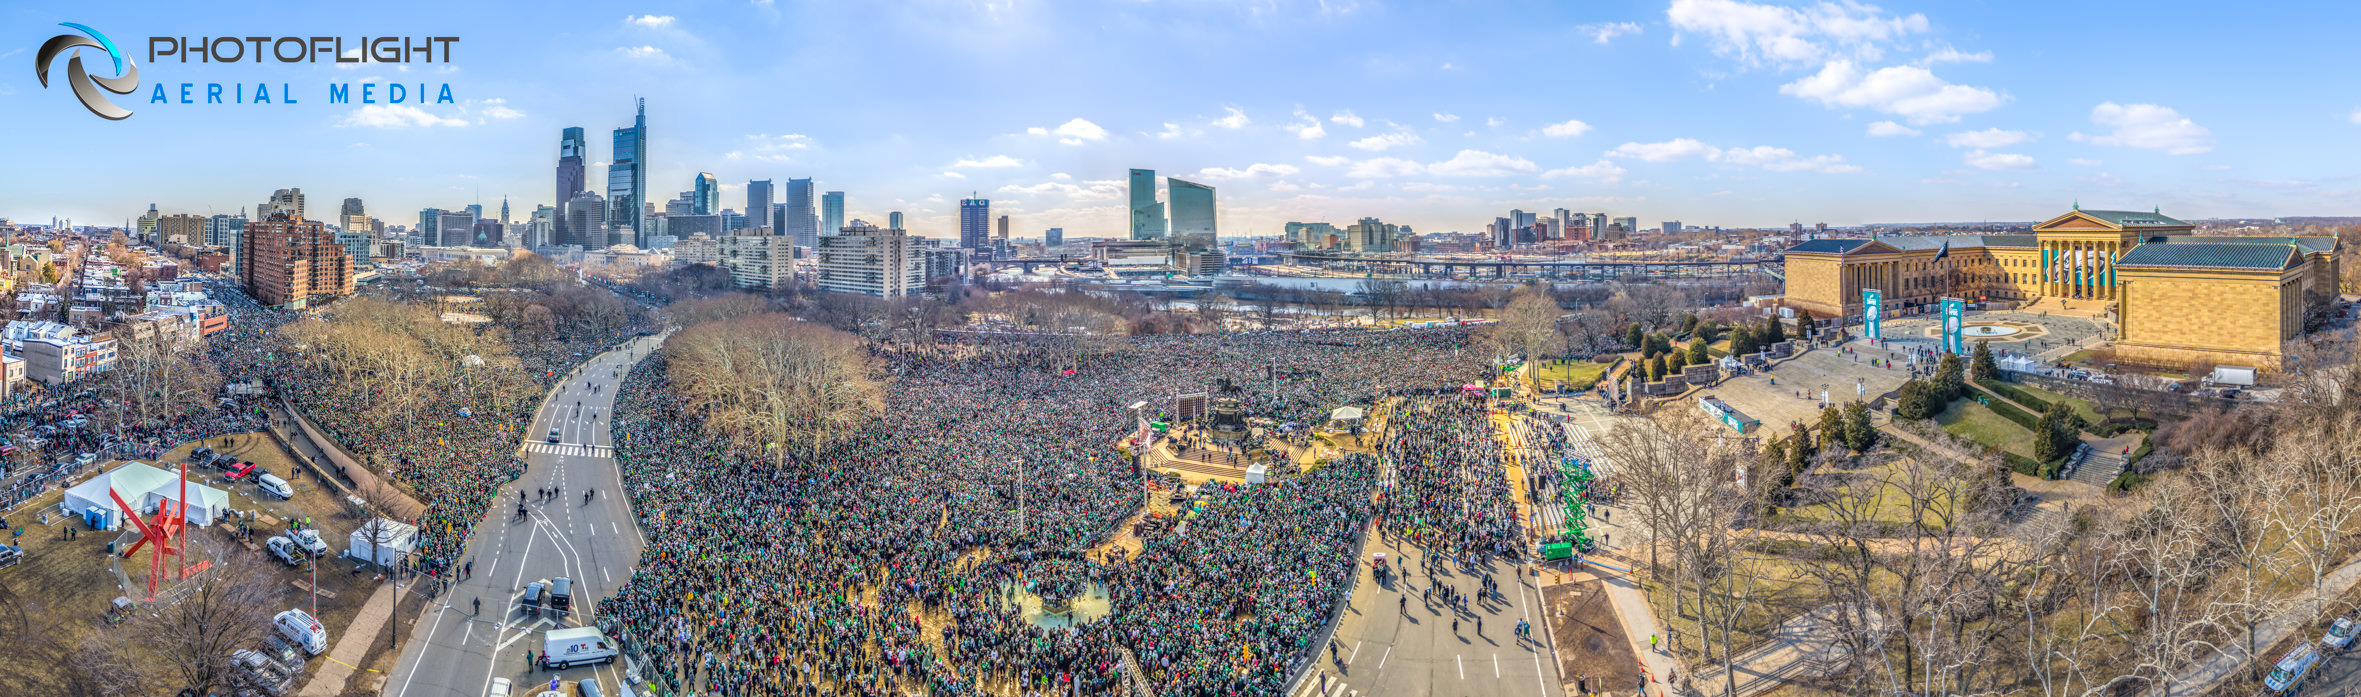 Eagles 2018 Super Bowl Victory Parade PA drone photography